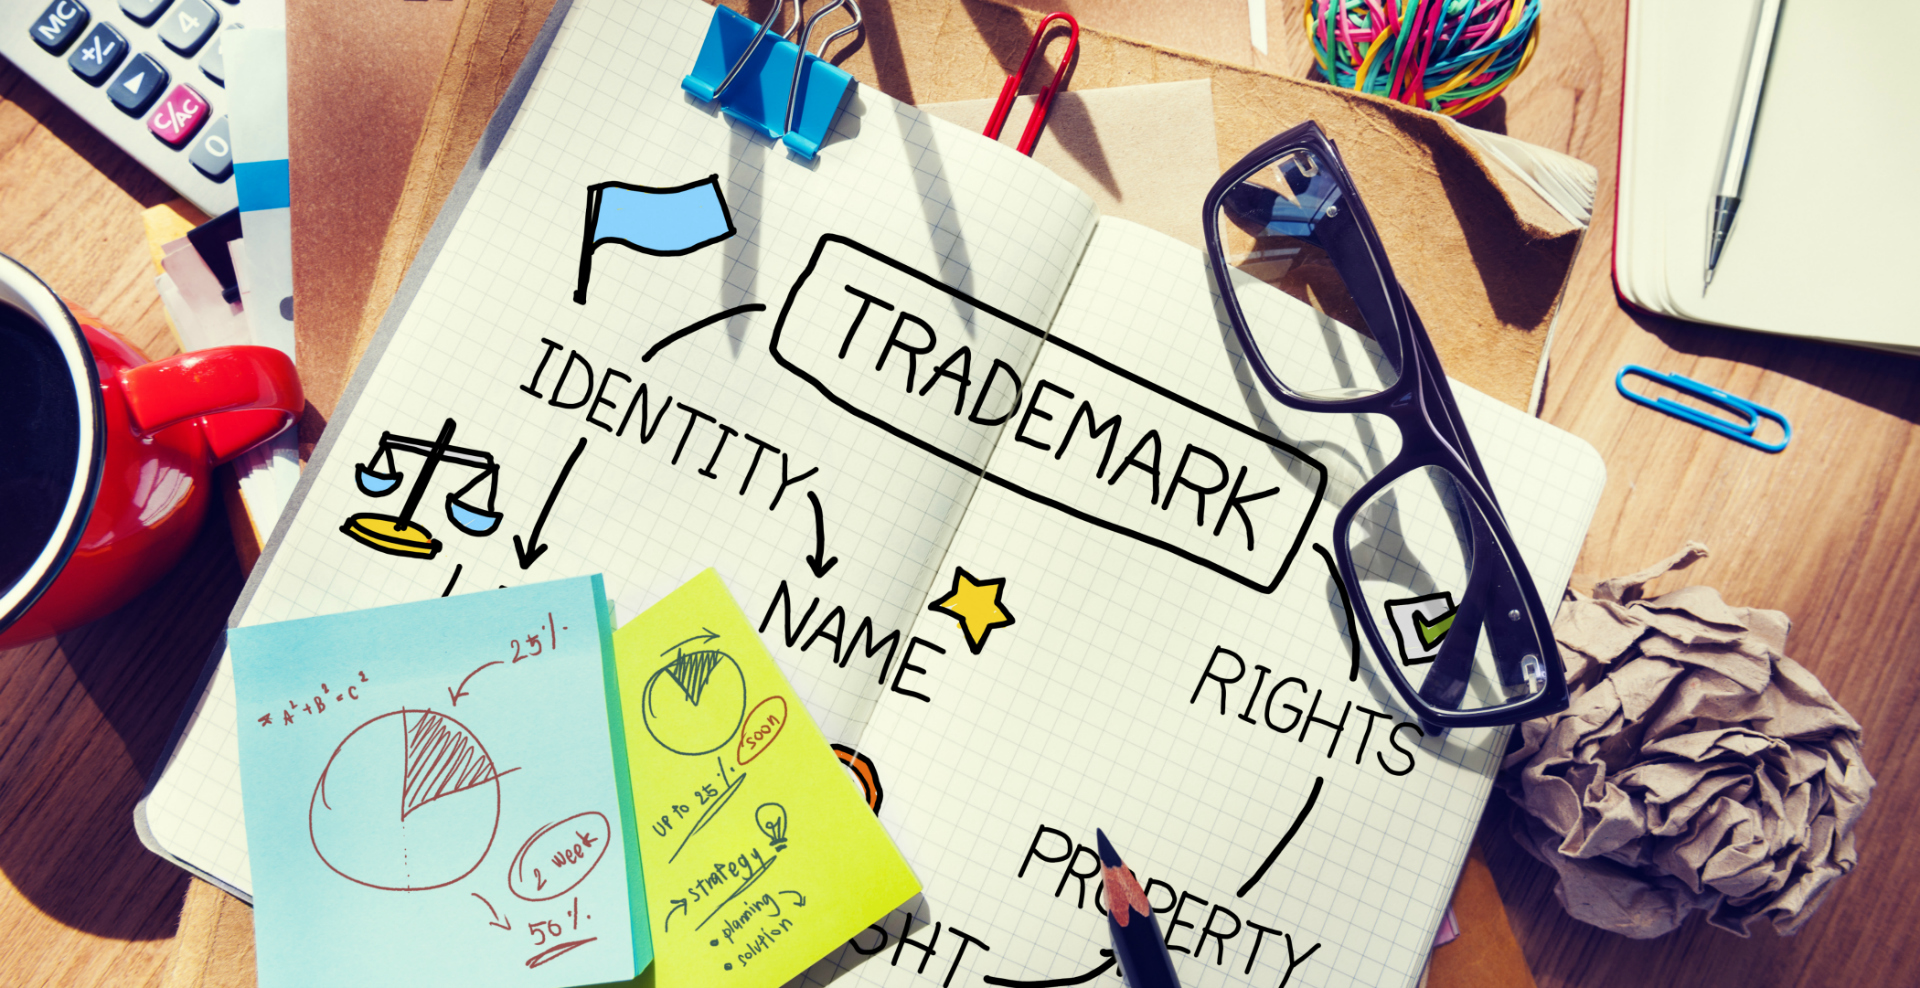 Branding IP basics for your startup or corporate venture [free checklist]